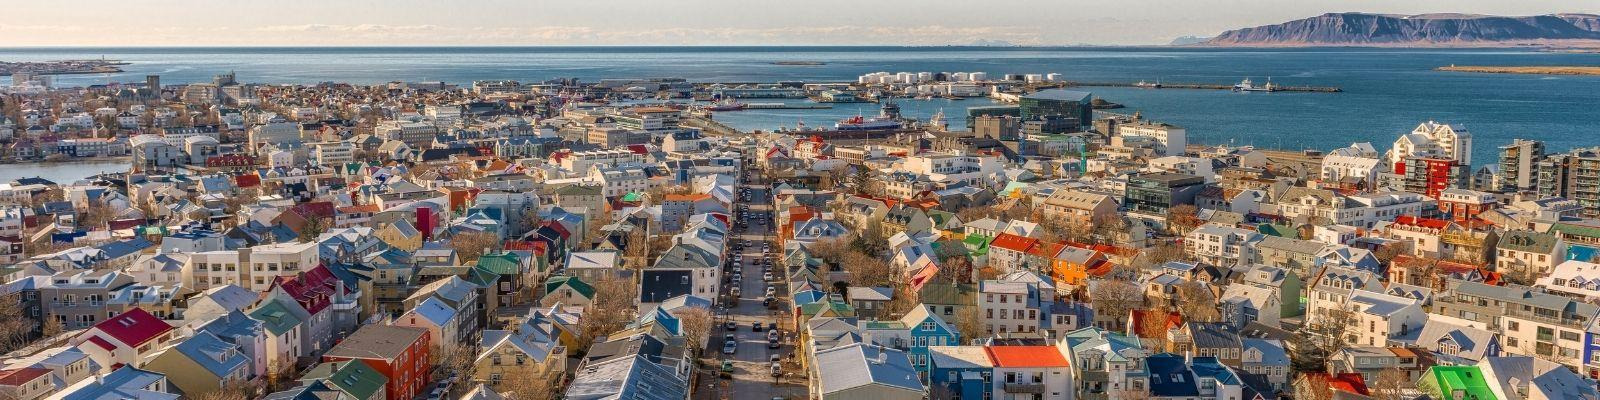 Where to Find the Best Views in Reykjavik